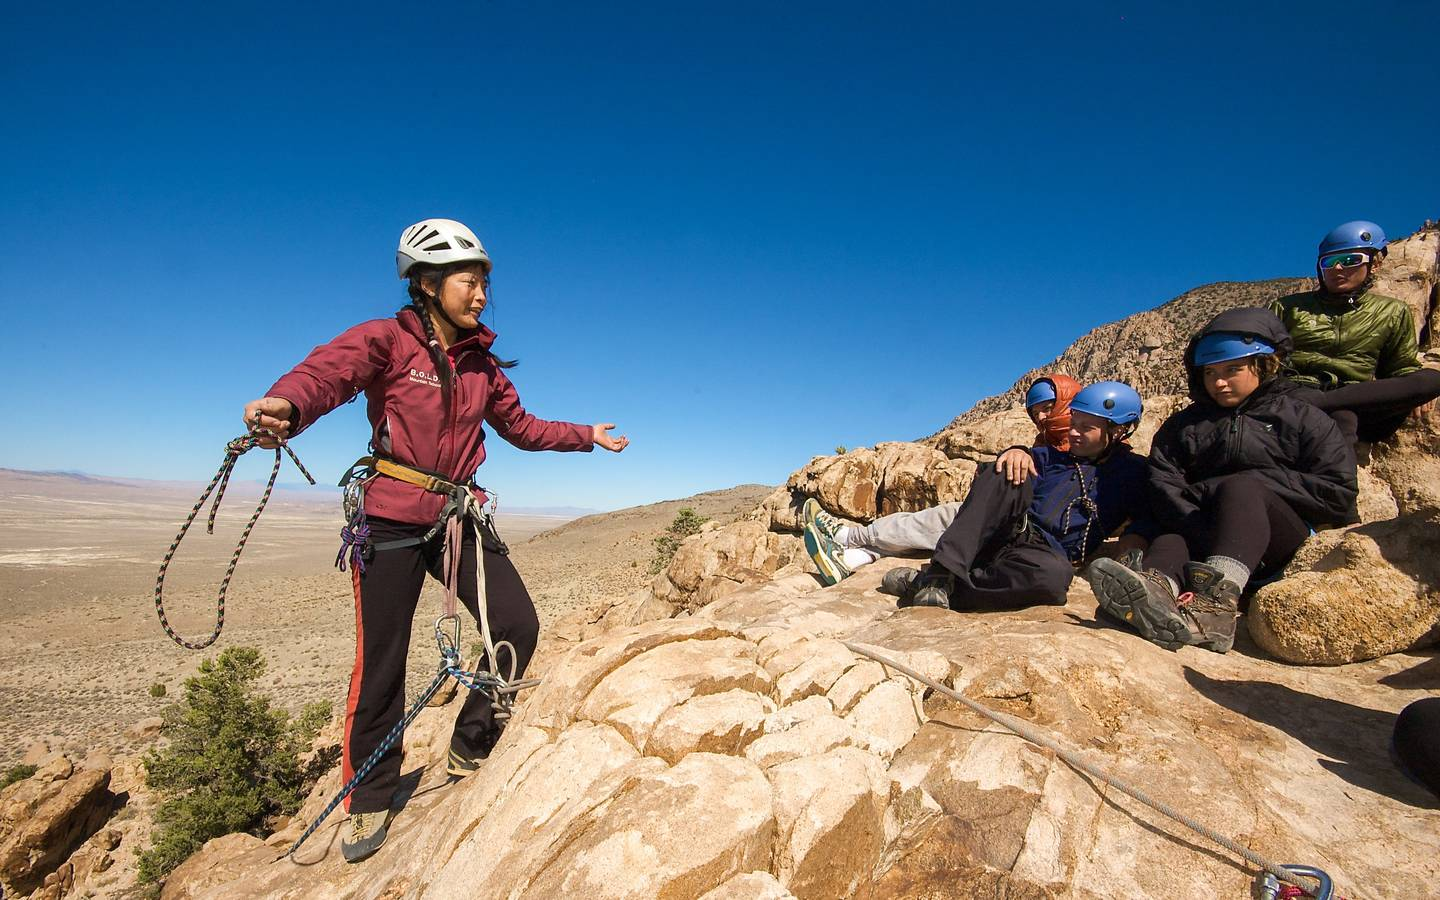 Students sitting on a rock ledge listen to an instructor's climbing lesson in the northern Rockies.